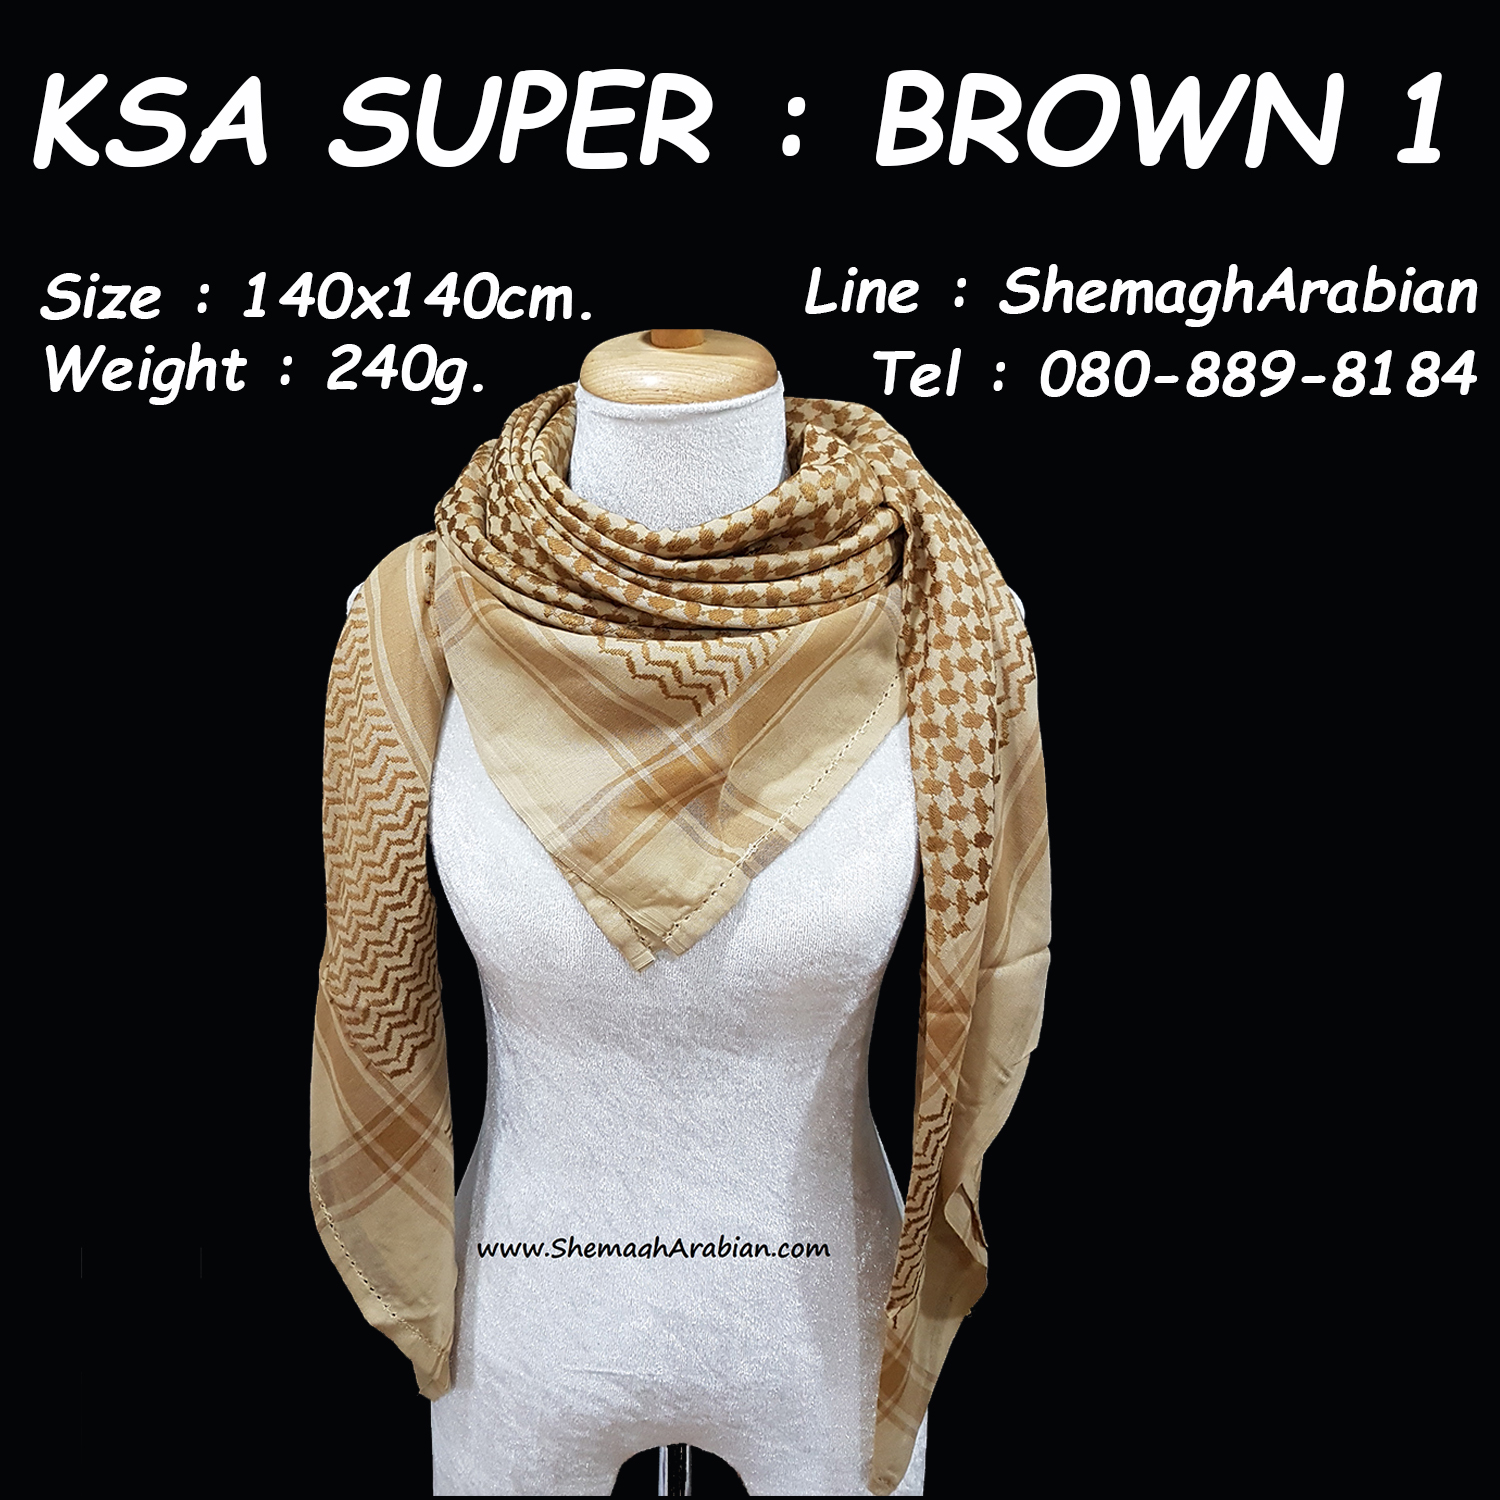 KSA SUPER : BROWN 1